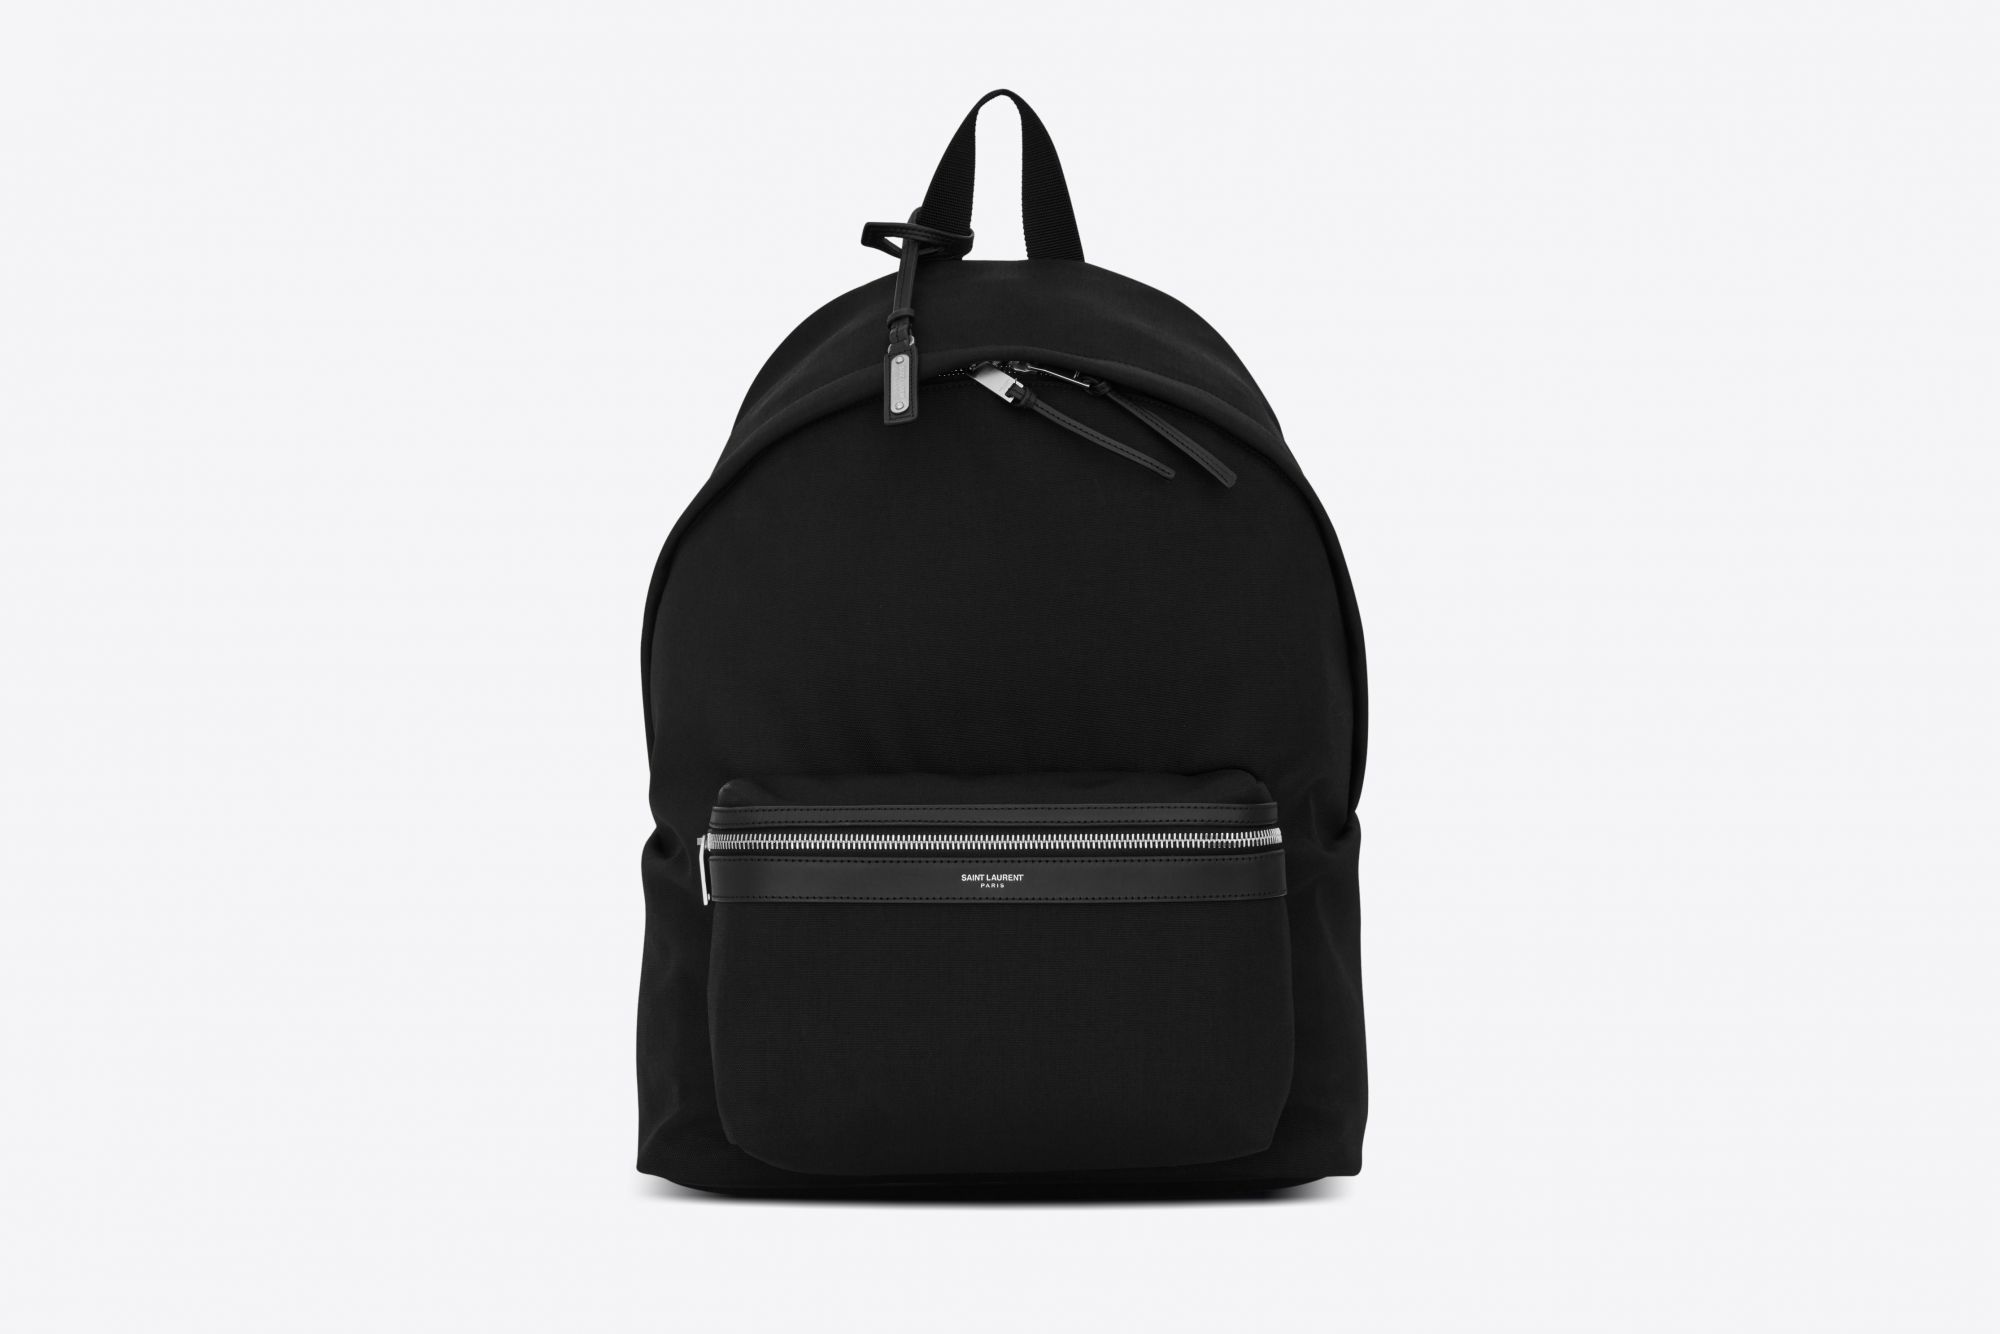 Saint Laurent And Google's Latest Collaboration Is A Luxury Backpack That Syncs With Your Phone